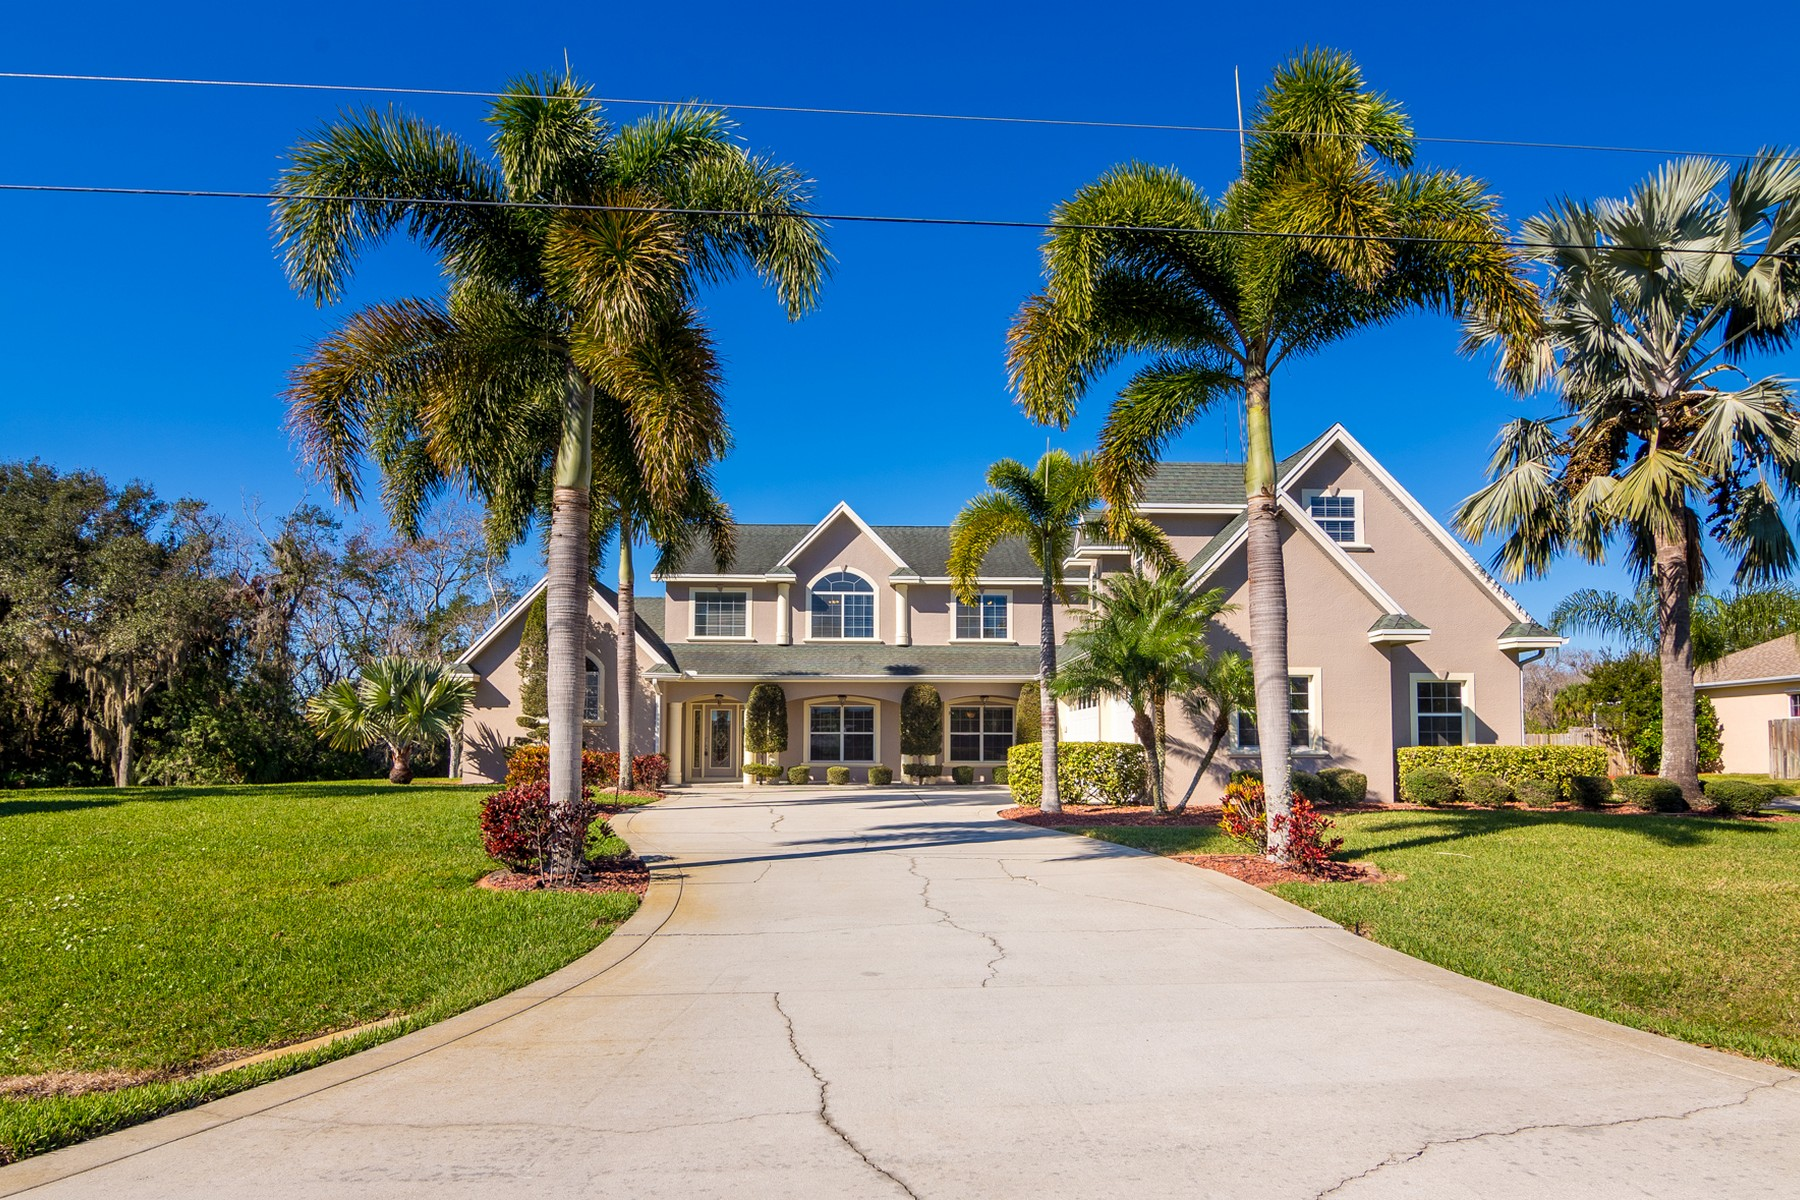 Single Family Home for Sale at Windover Farms of Melbourne 4450 Philodendron Ct Melbourne, Florida 32934 United States